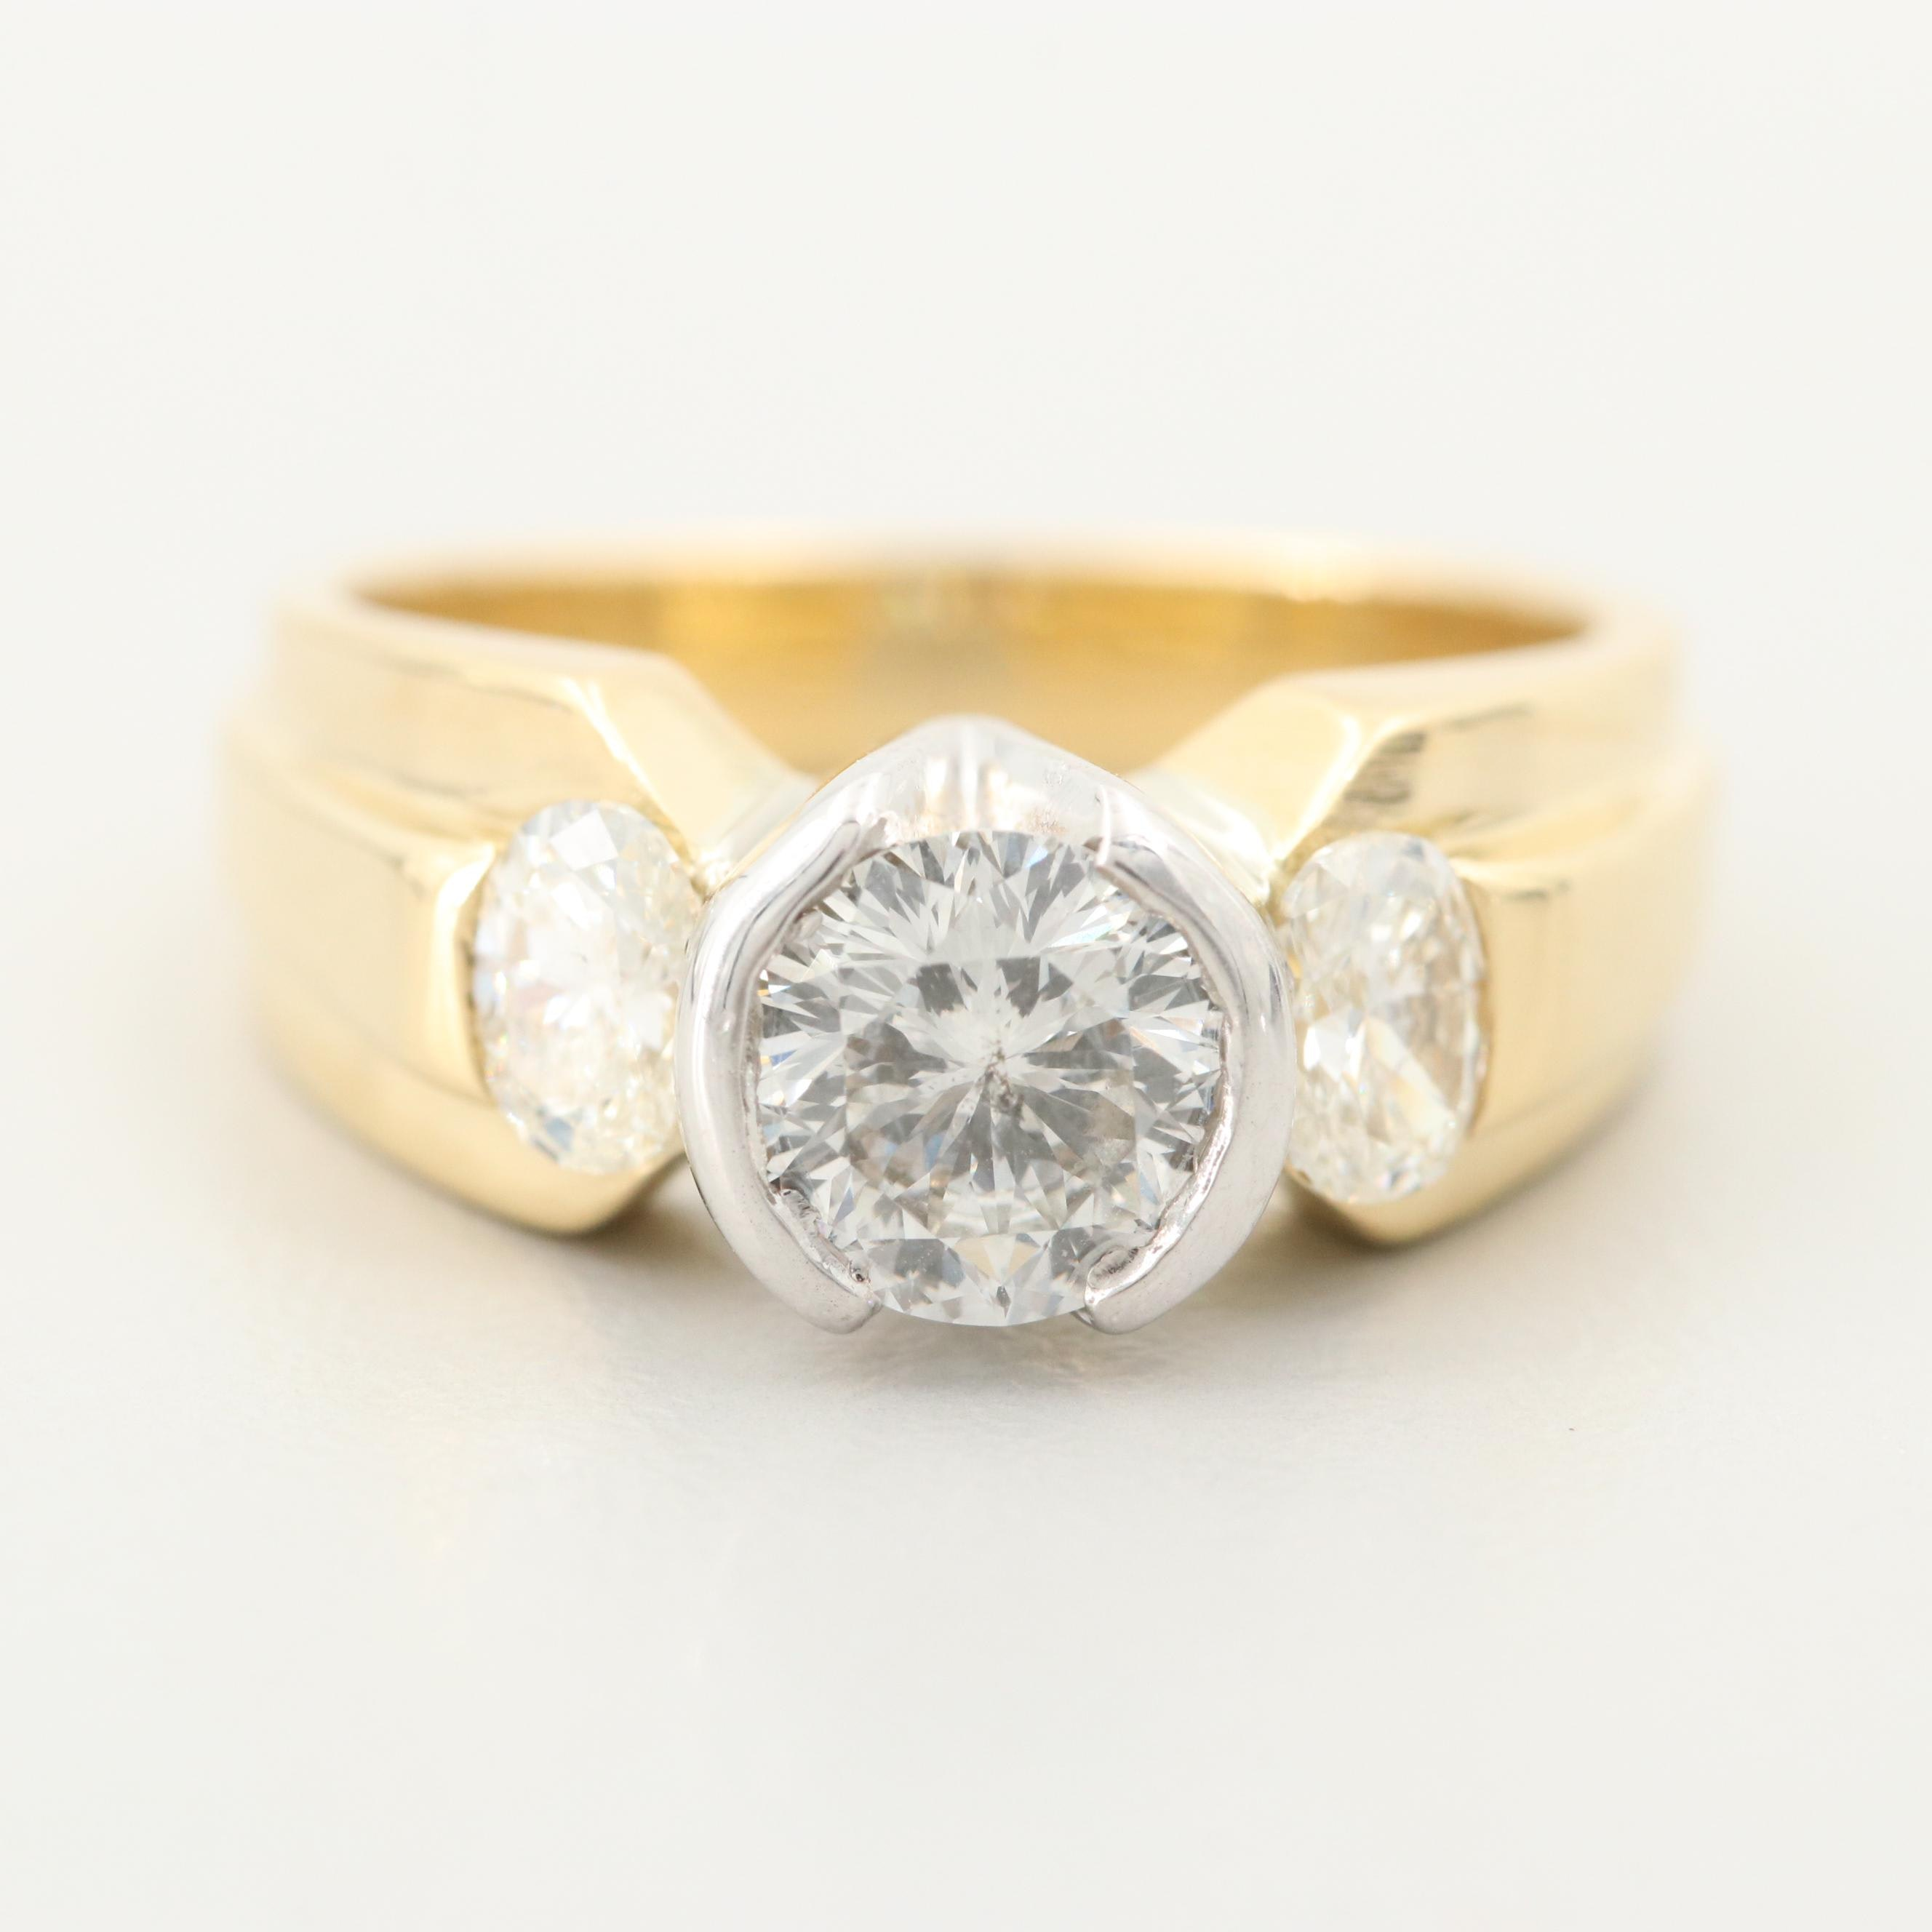 18K Yellow Gold 1.50 CTW Diamond Ring with White Gold Accents and Euro Shank